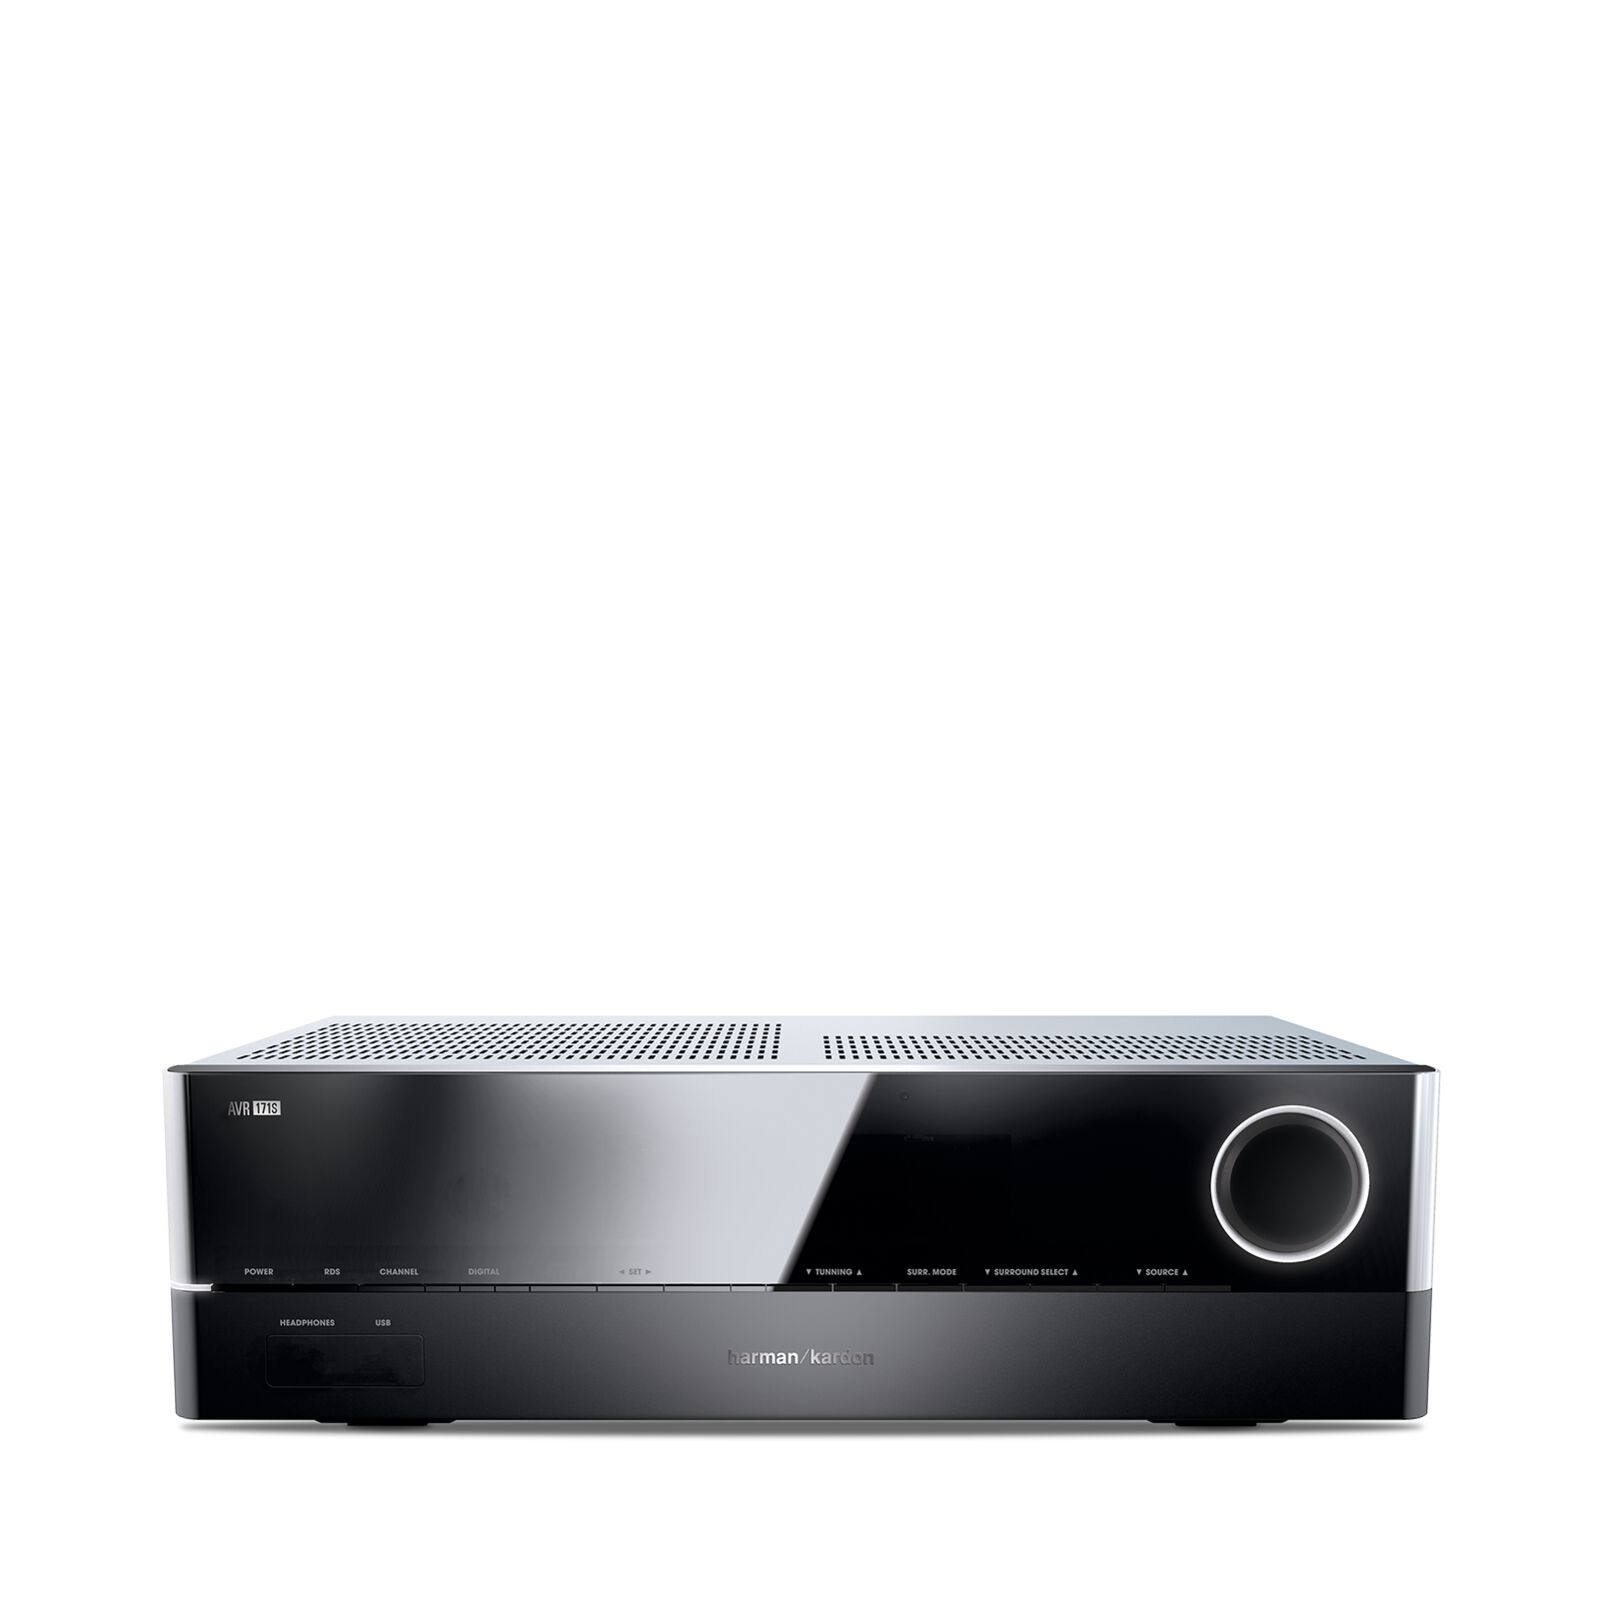 Image of 7.2 AV-receiver Harman Kardon AVR 171S 7x100 W Zwart 4K UltraHD, AirPlay, Bluetooth, DLNA, Internetradio, USB